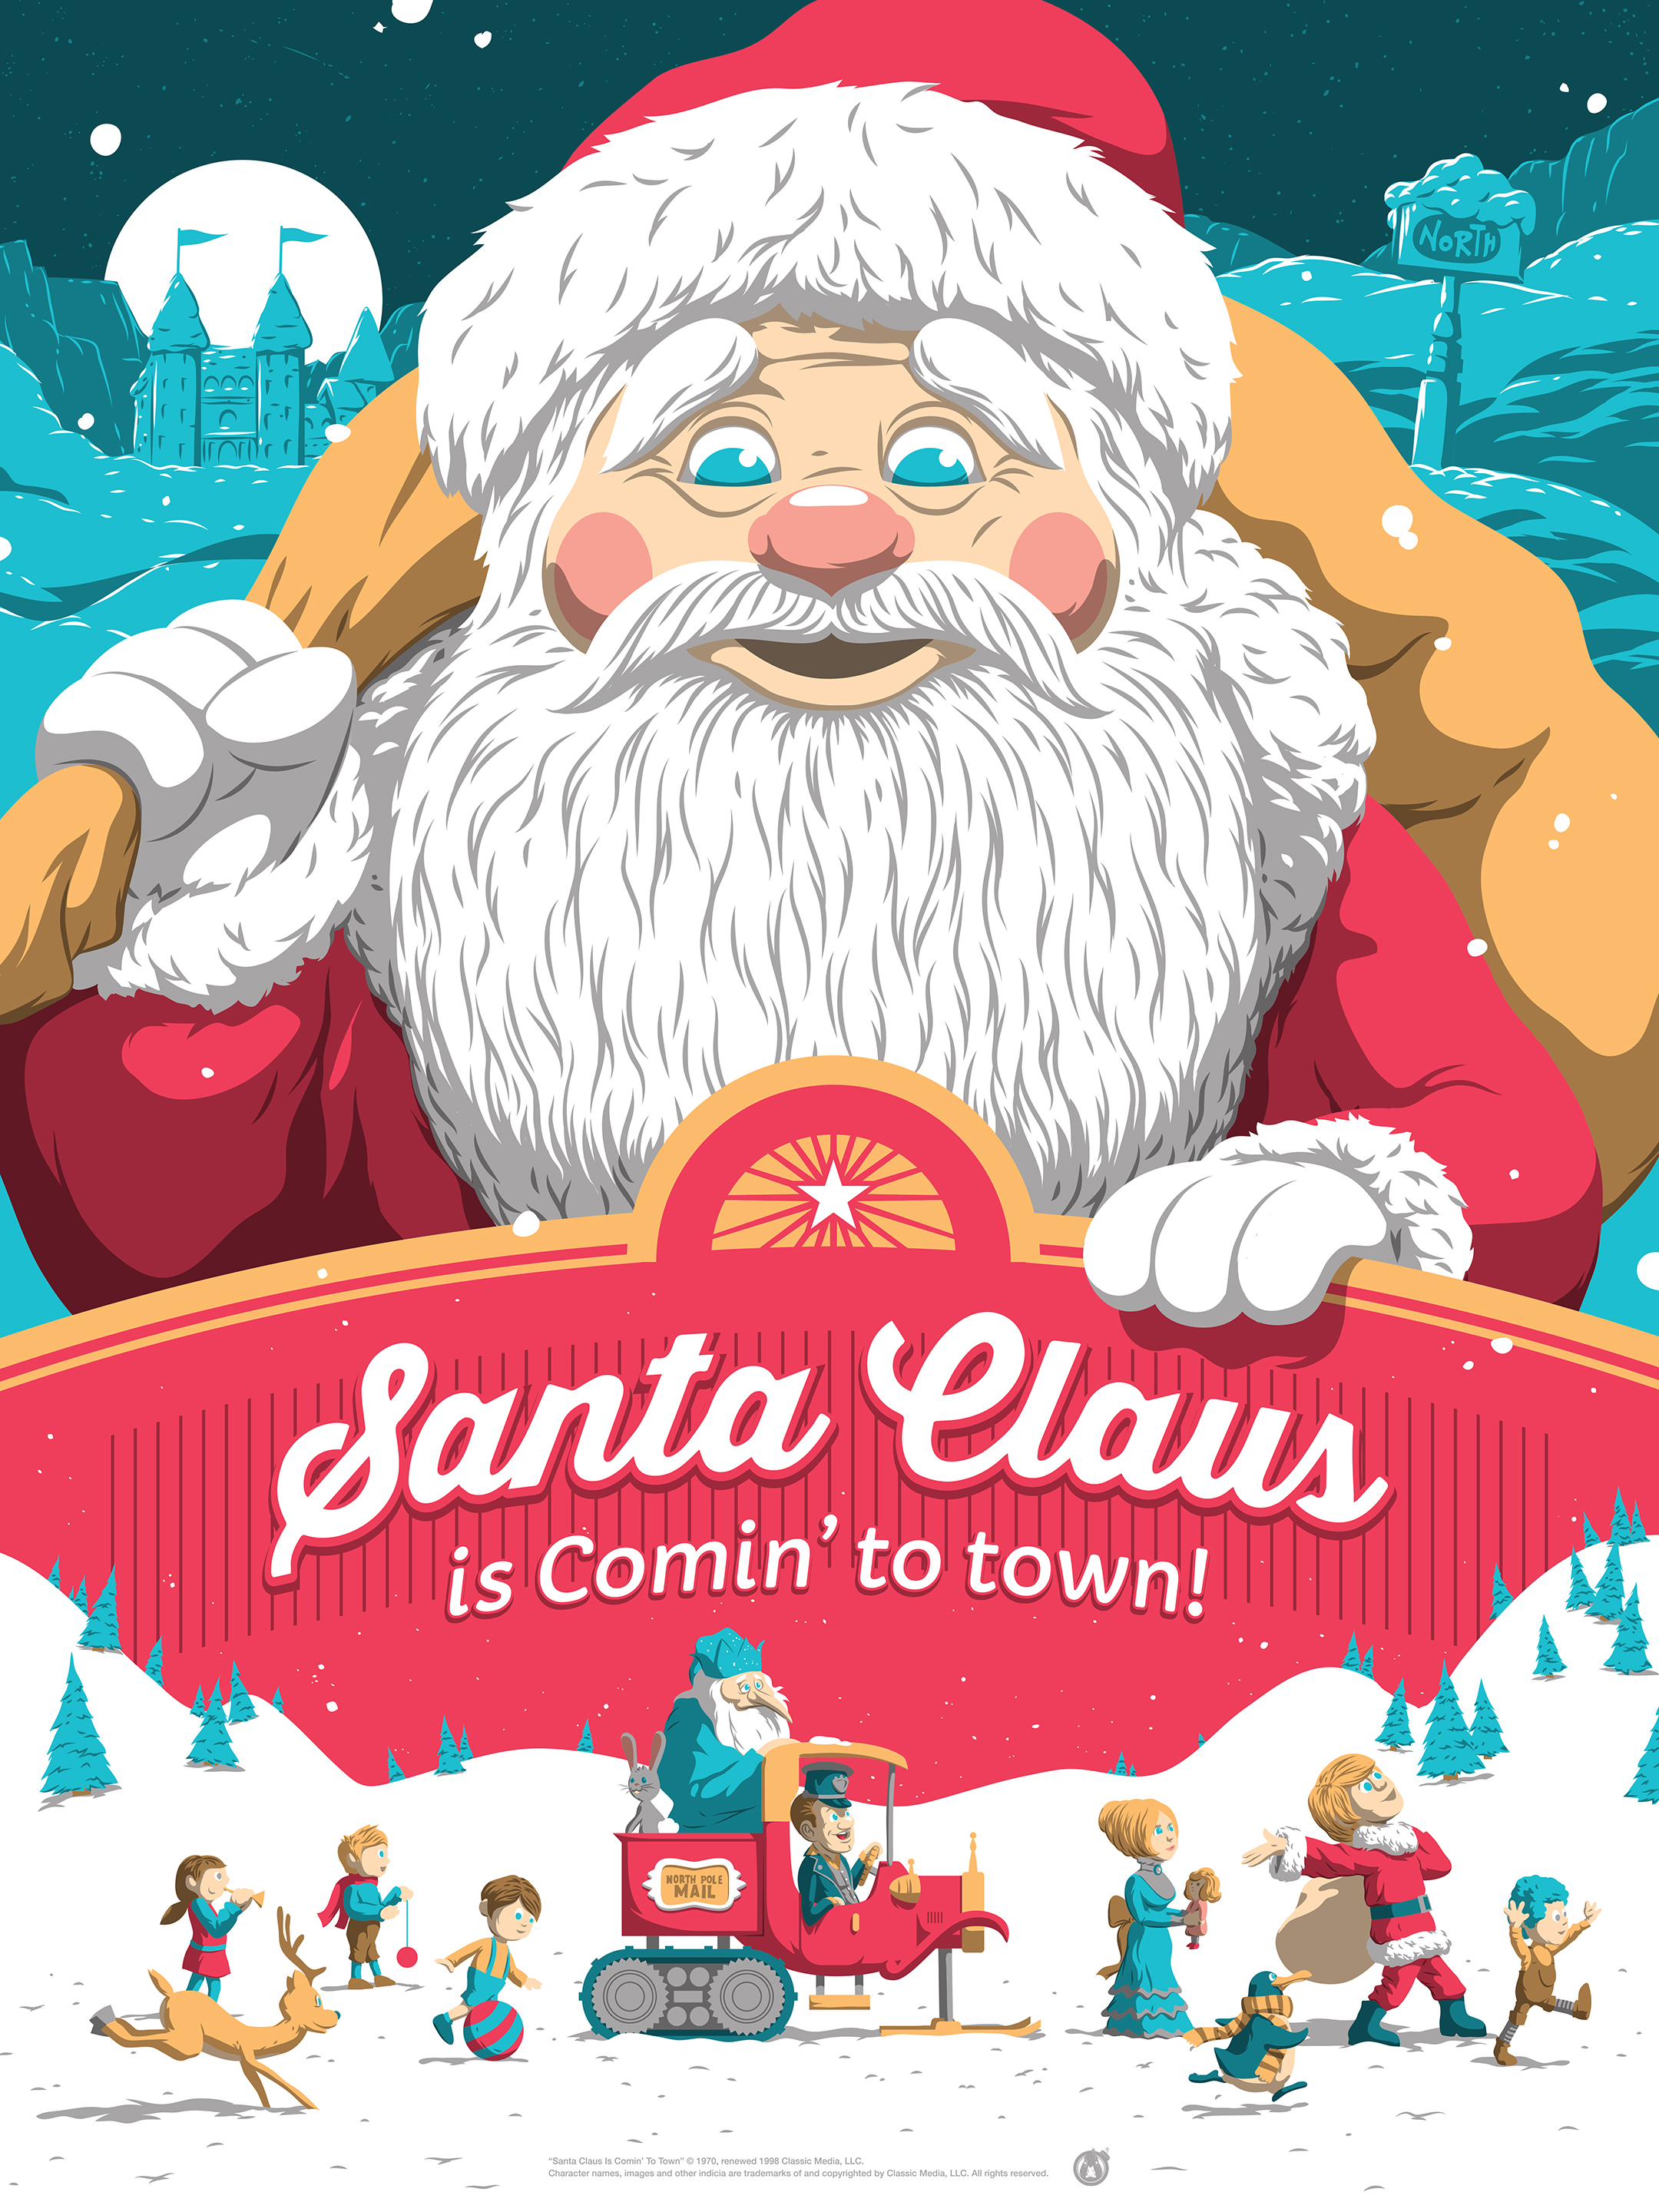 Santa claus is comin to town by florey 411posters santa claus is comin to town by florey 18 x 24 7 color screenprint ed of 150 55 jeuxipadfo Choice Image